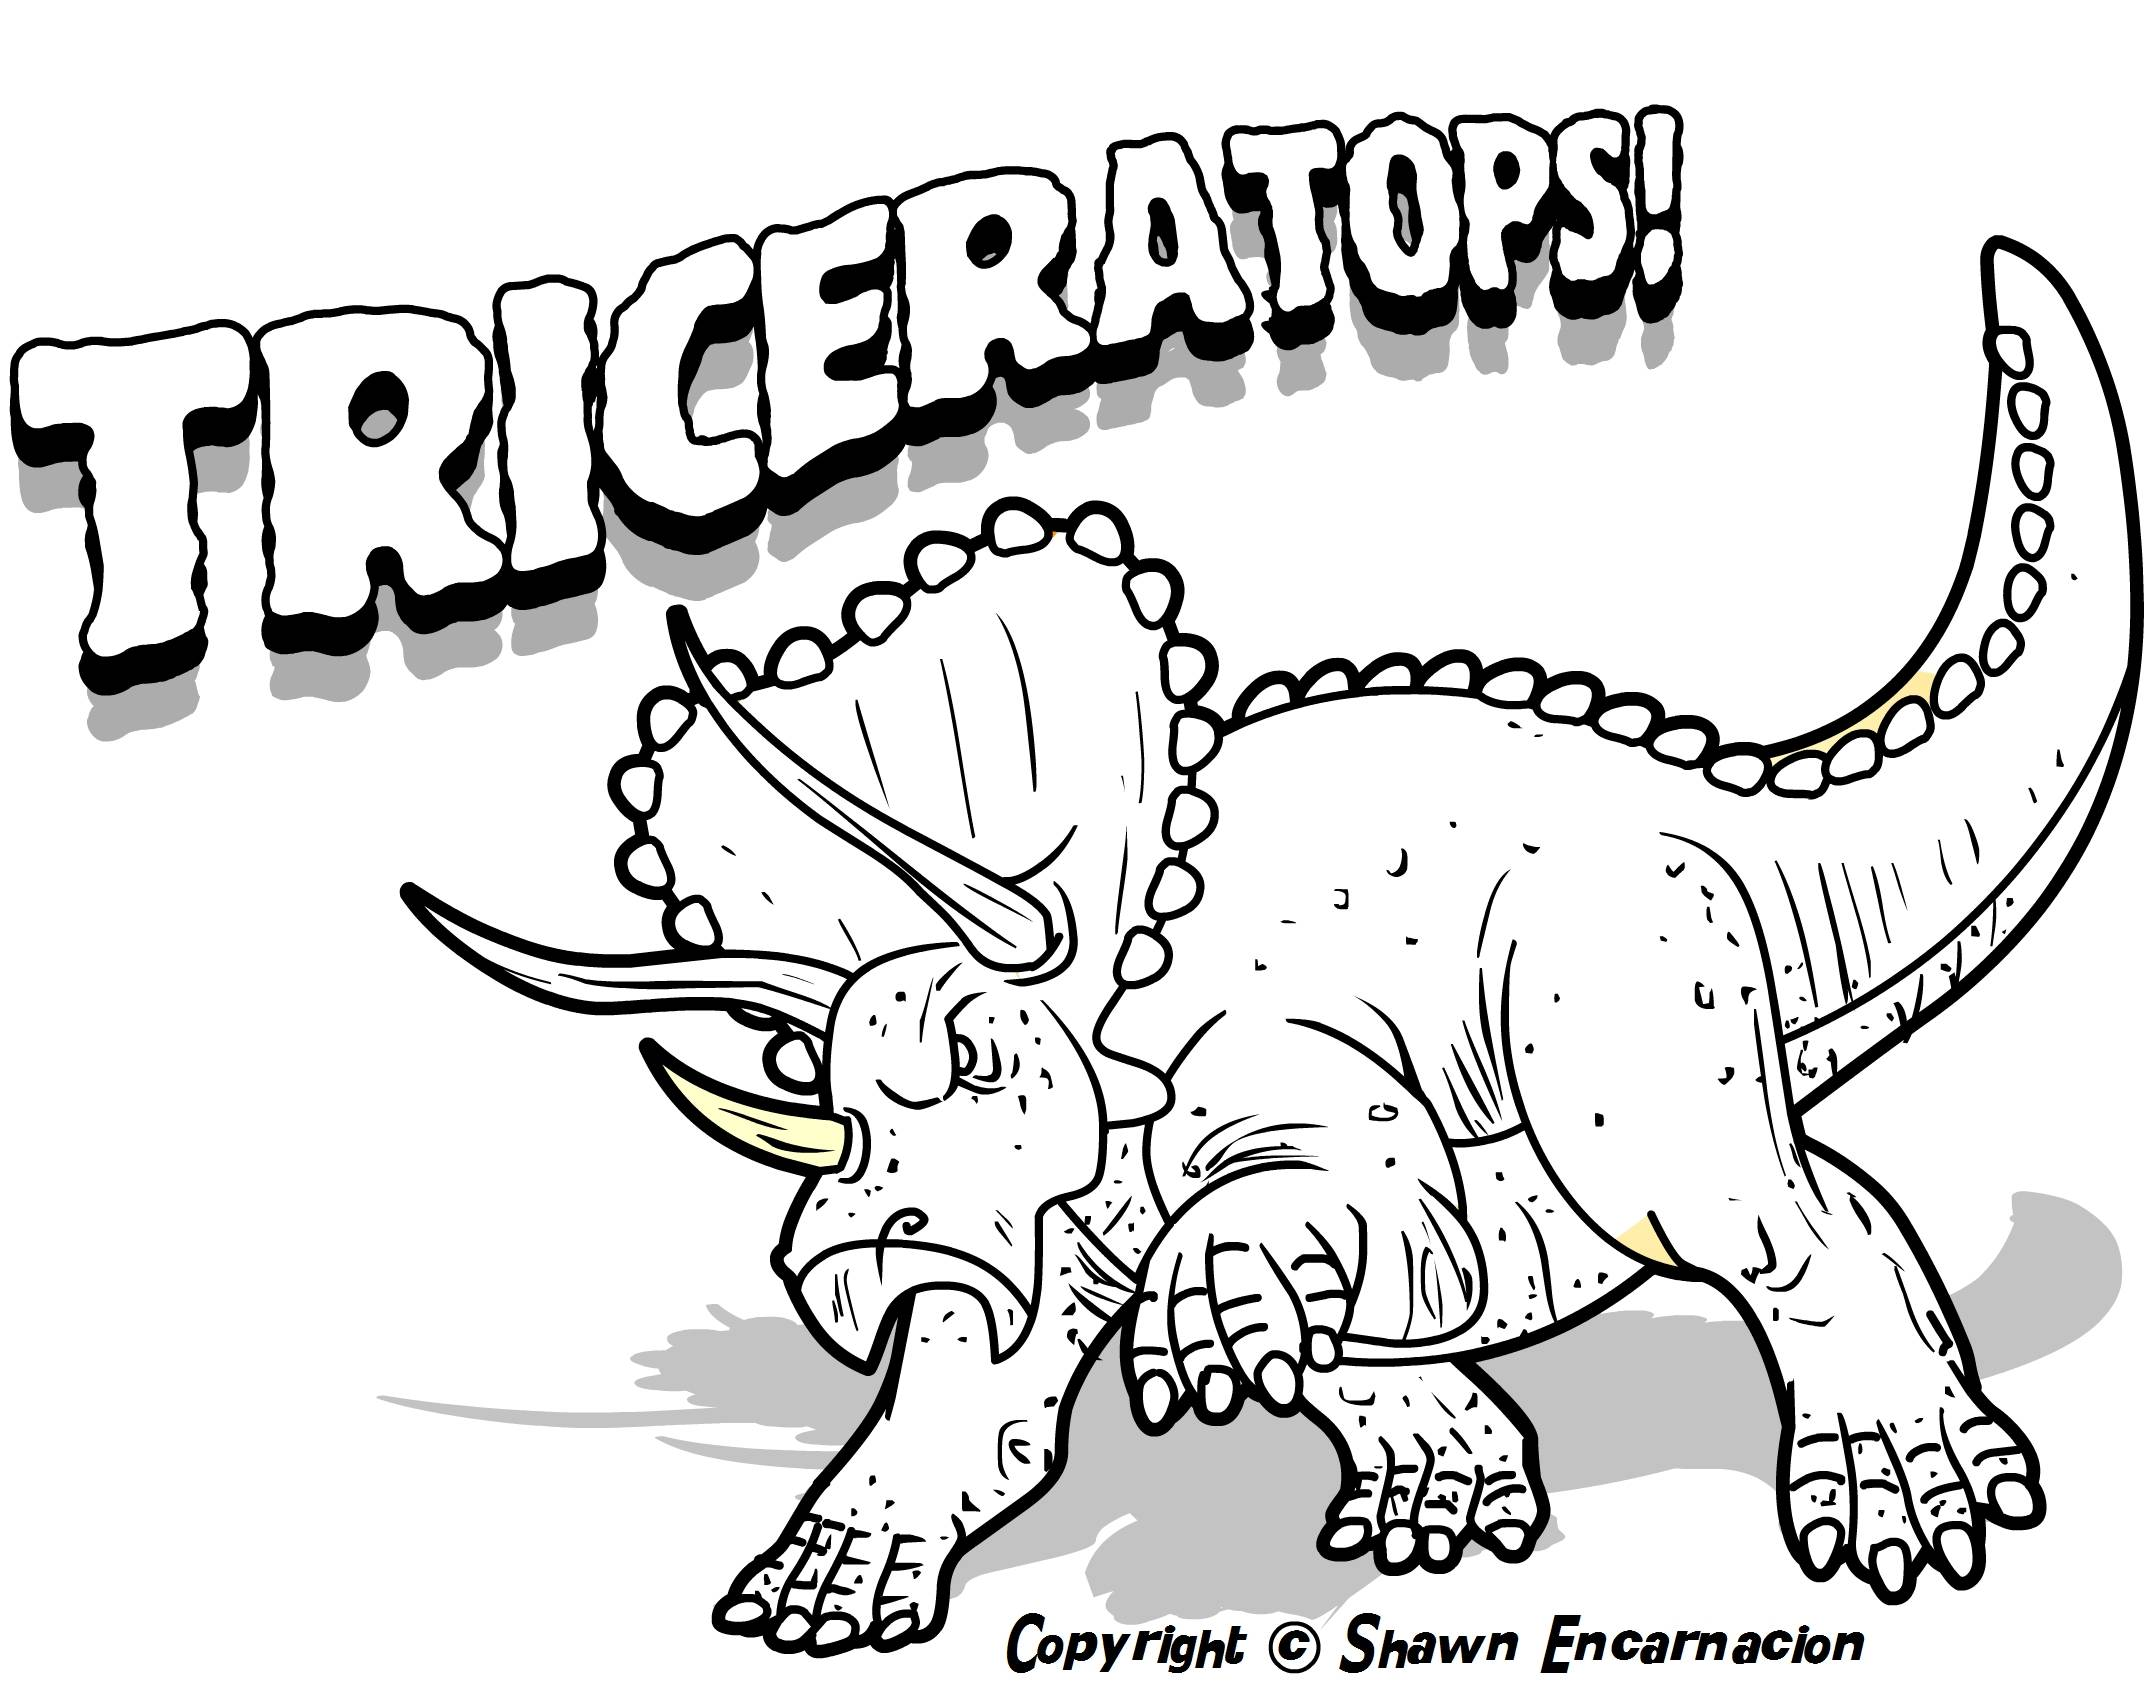 Terrible Lizards Dinosaurs Coloring Pages 17 Pictures And